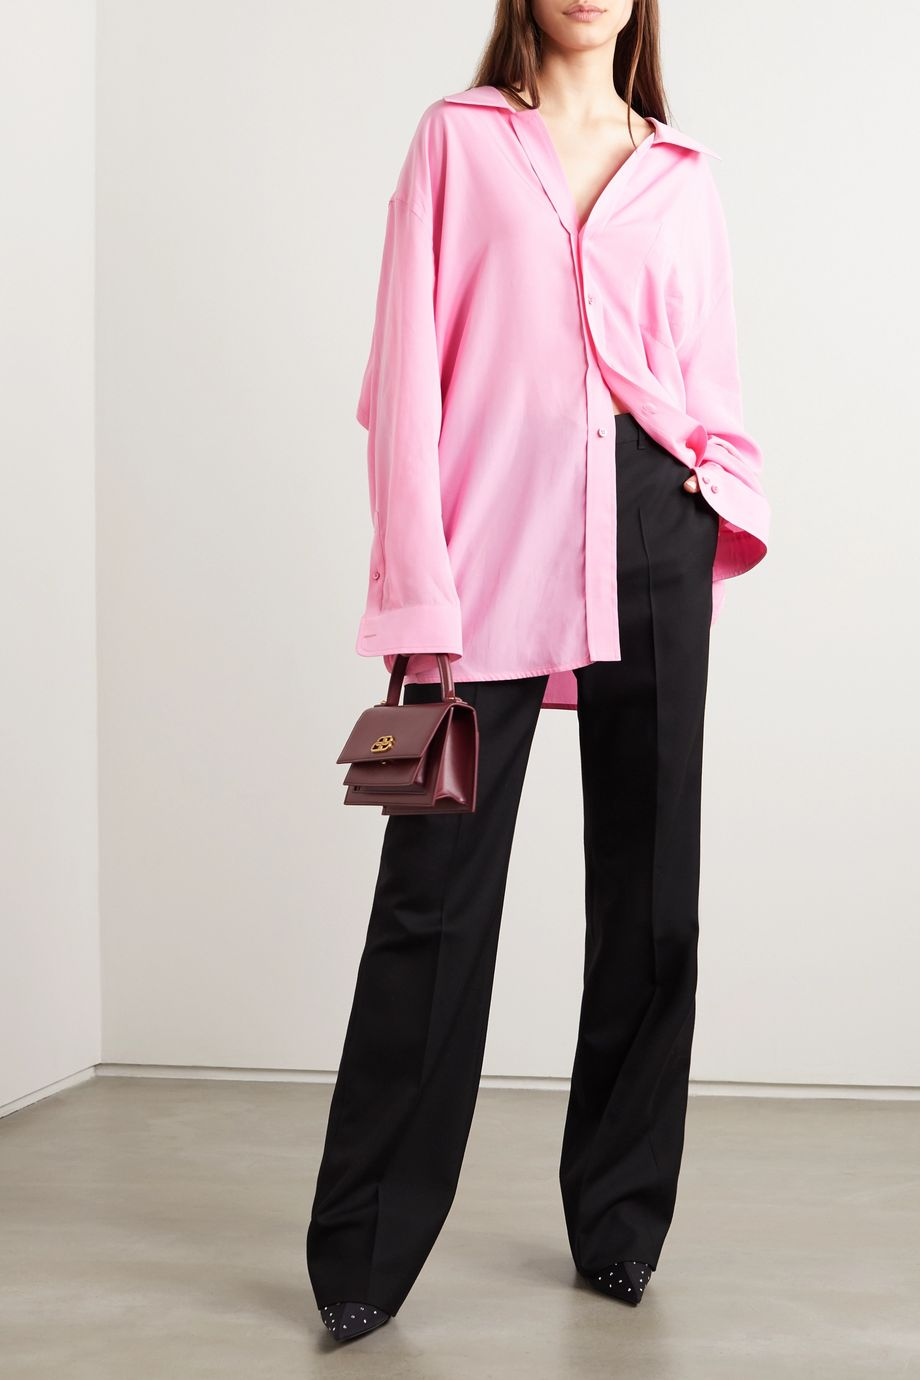 Balenciaga Oversized satin shirt